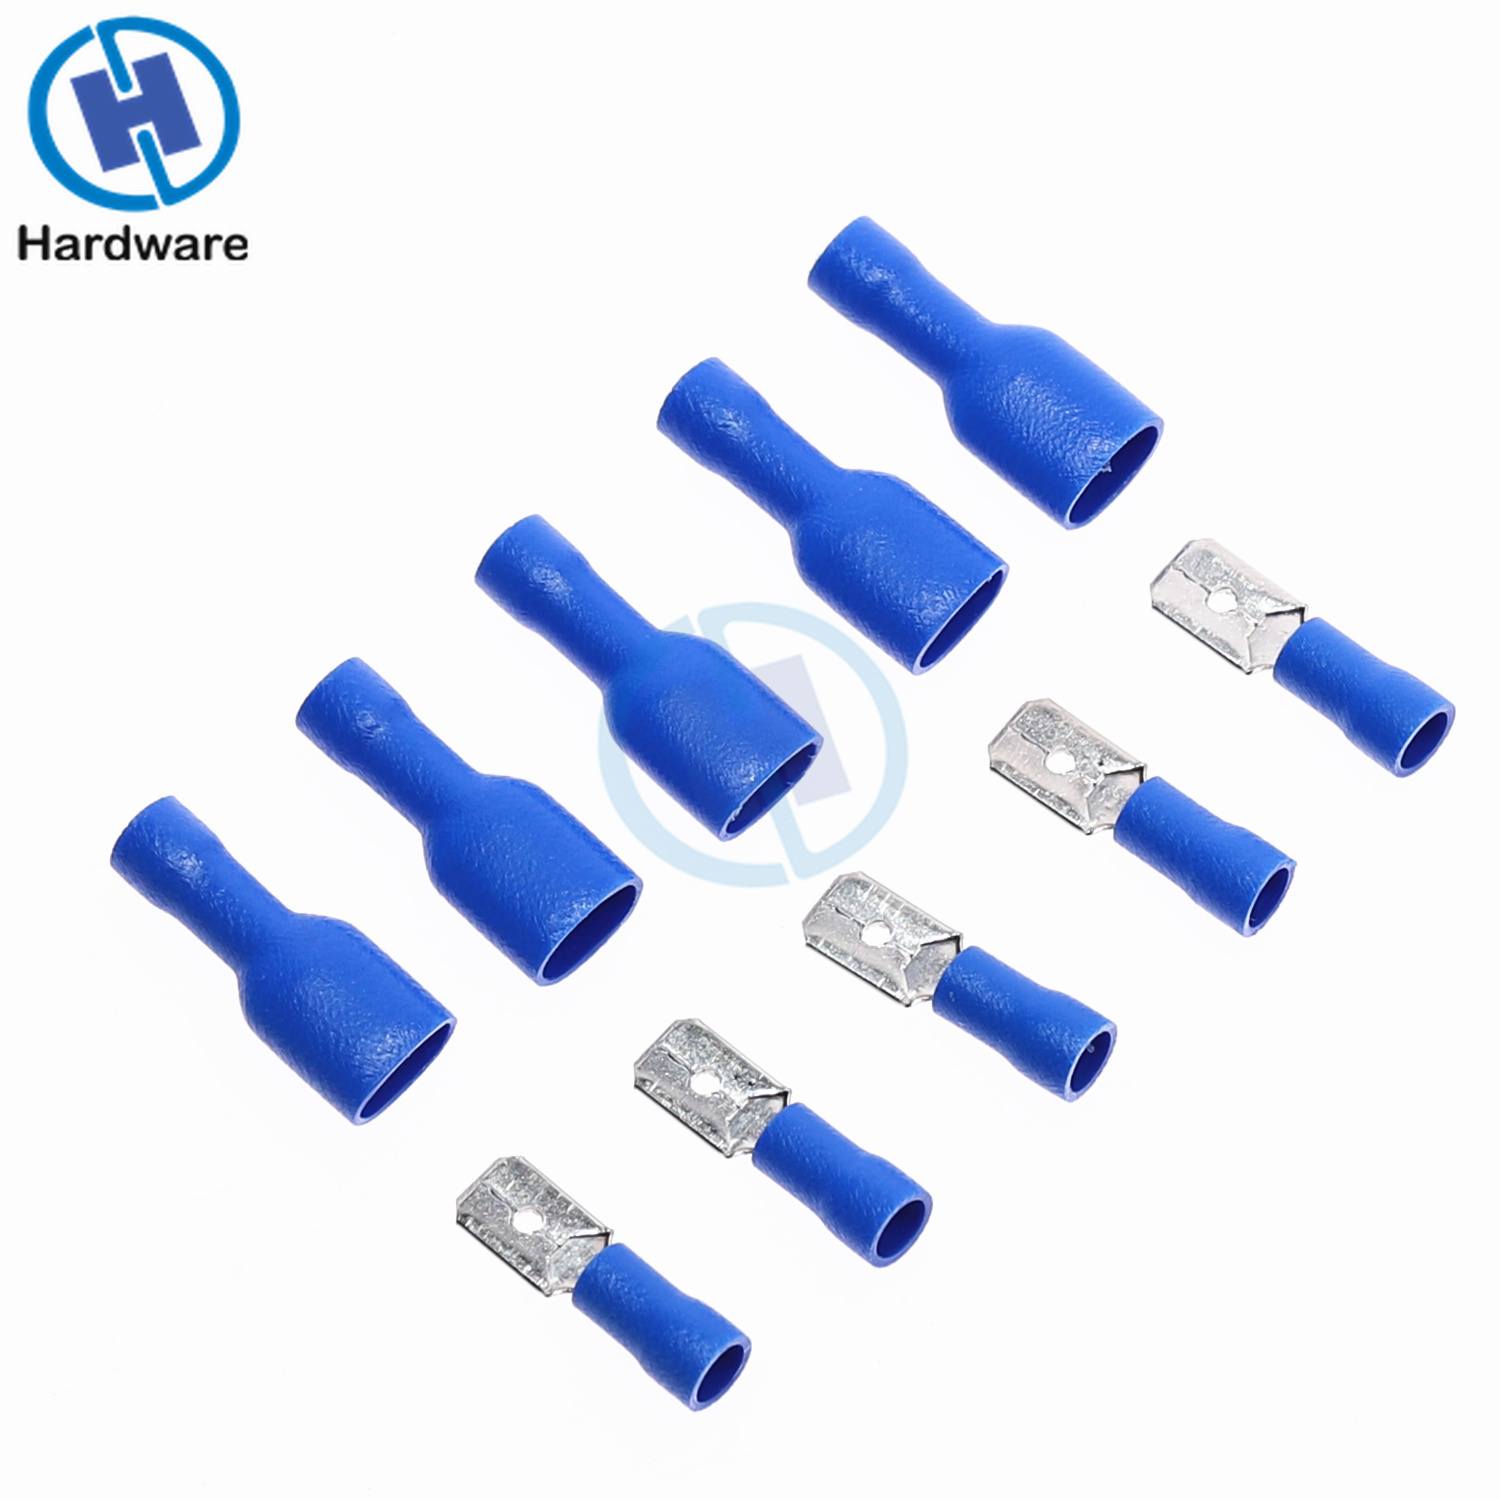 100PCS Blue 16-14 AWG Insulated Spade Crimp Wire Cable Connector Terminal Male Female Kit